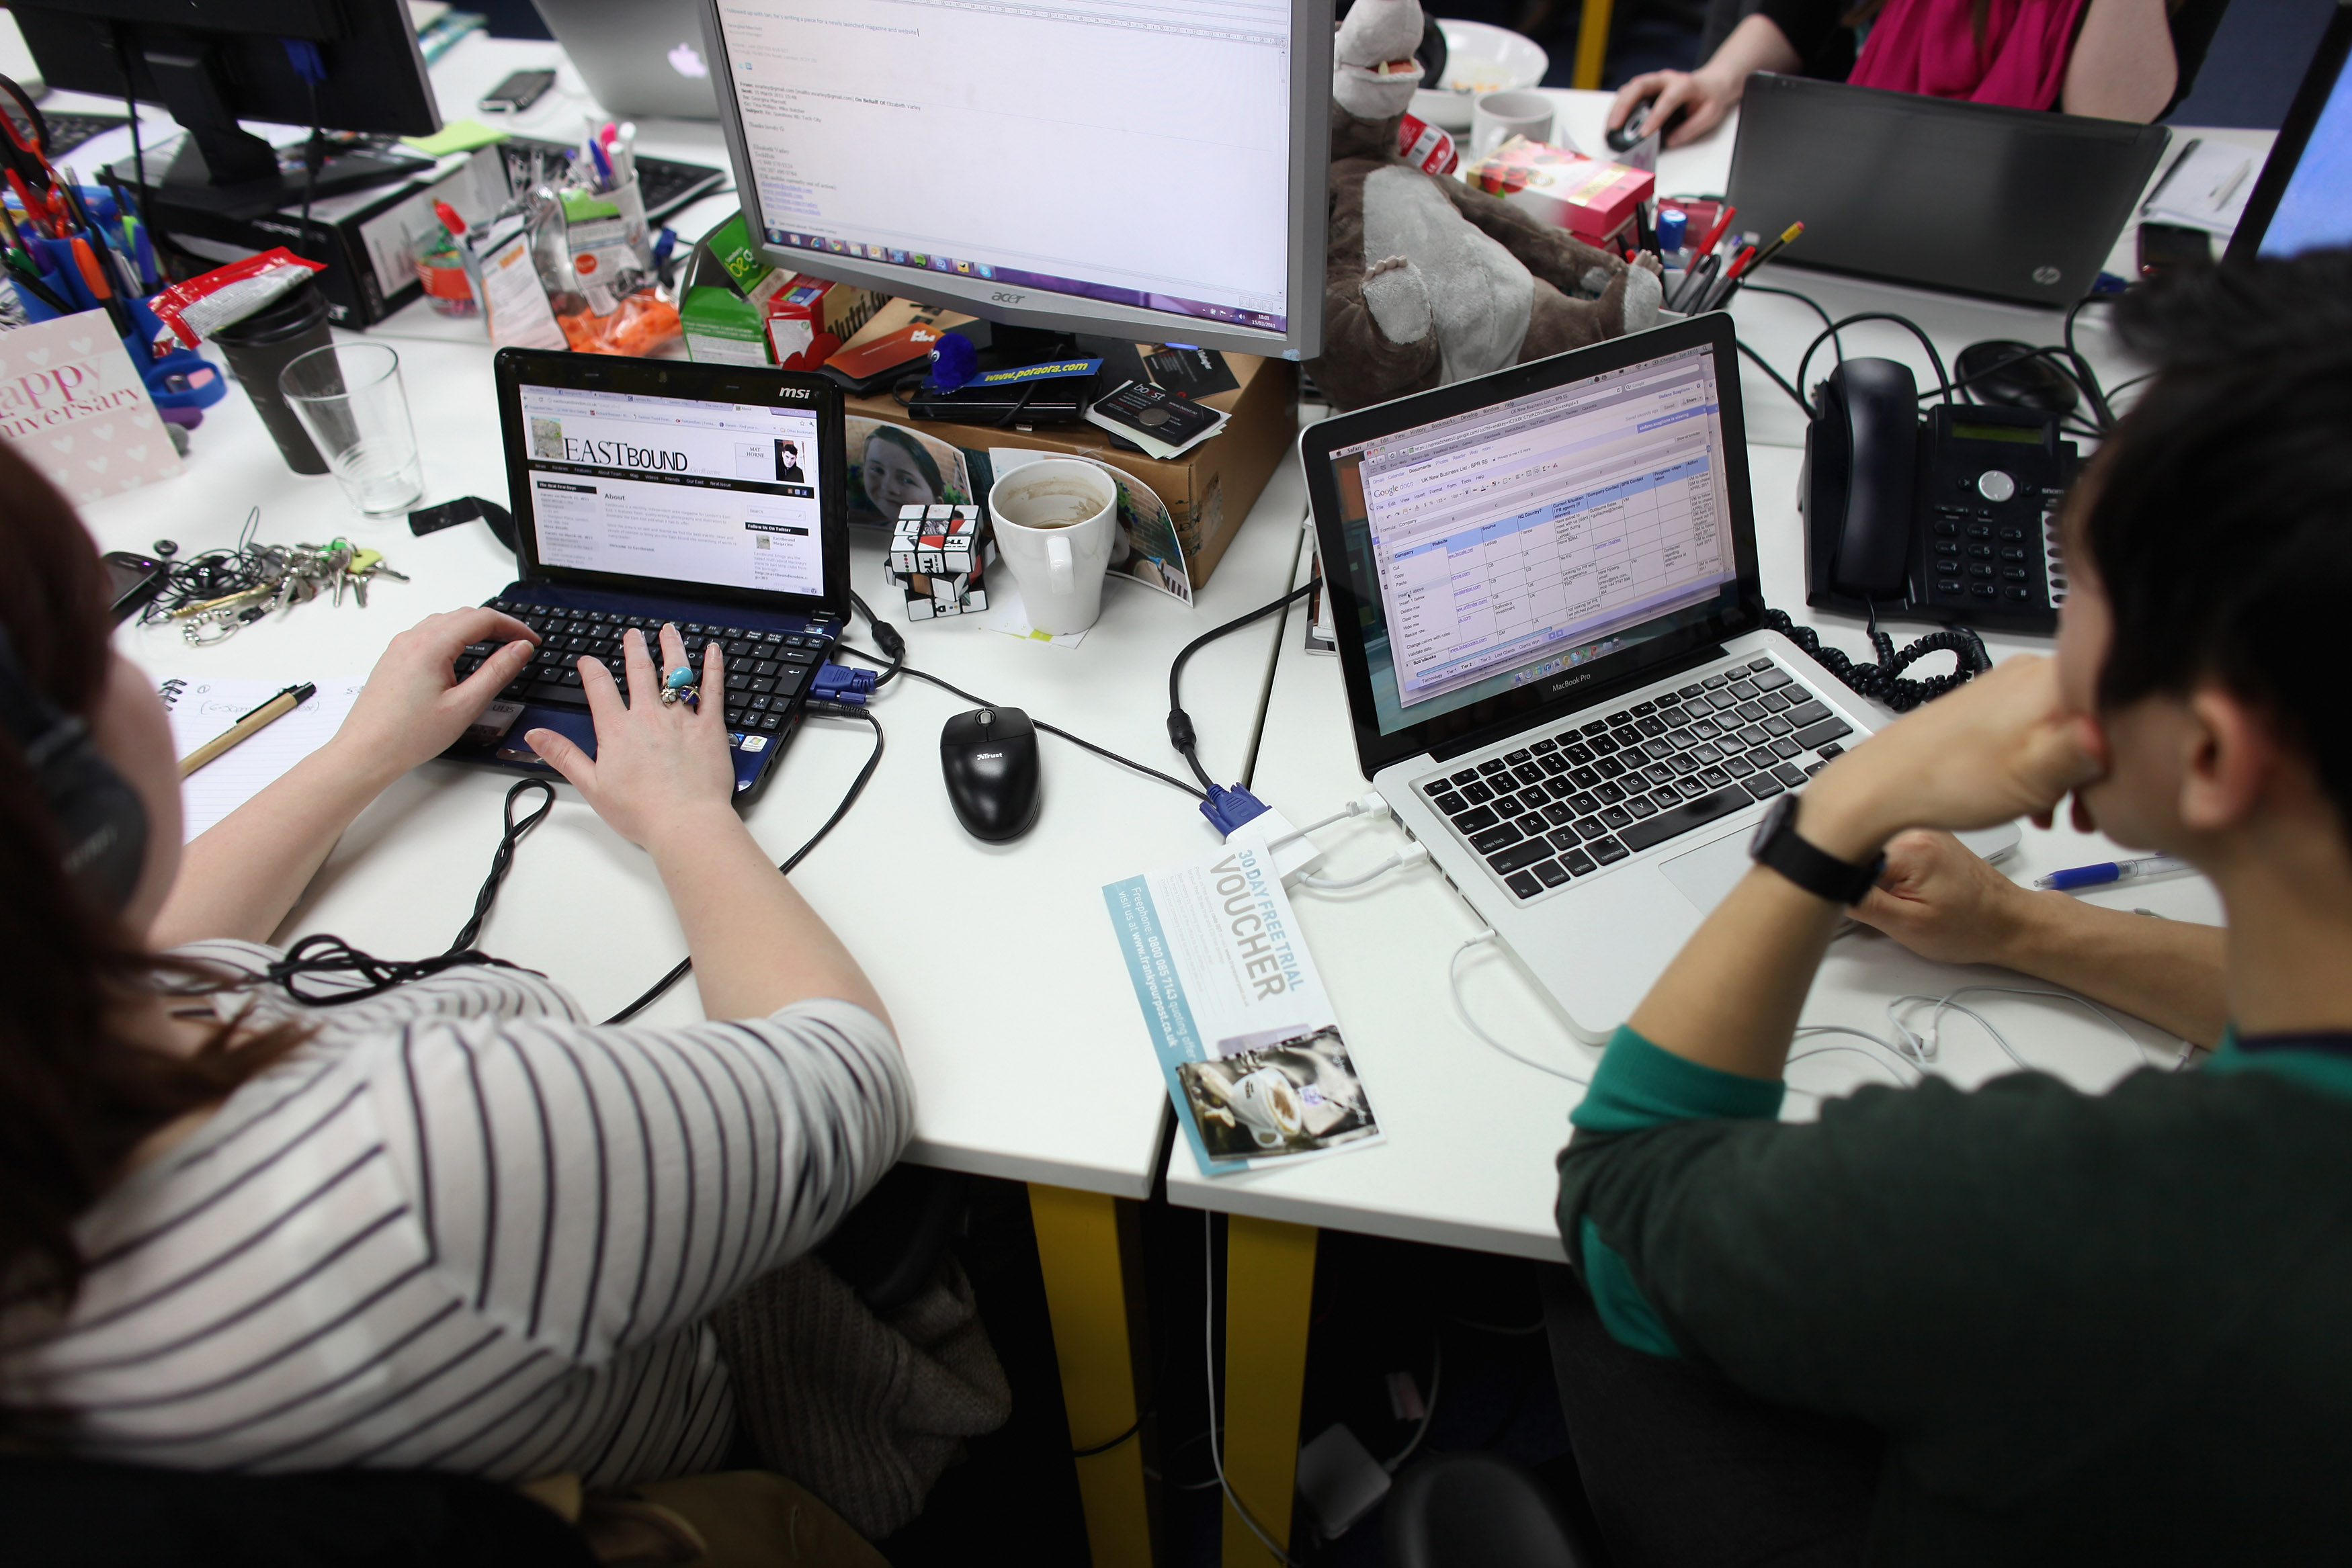 People work at computers on March 15, 2011 in London, England.